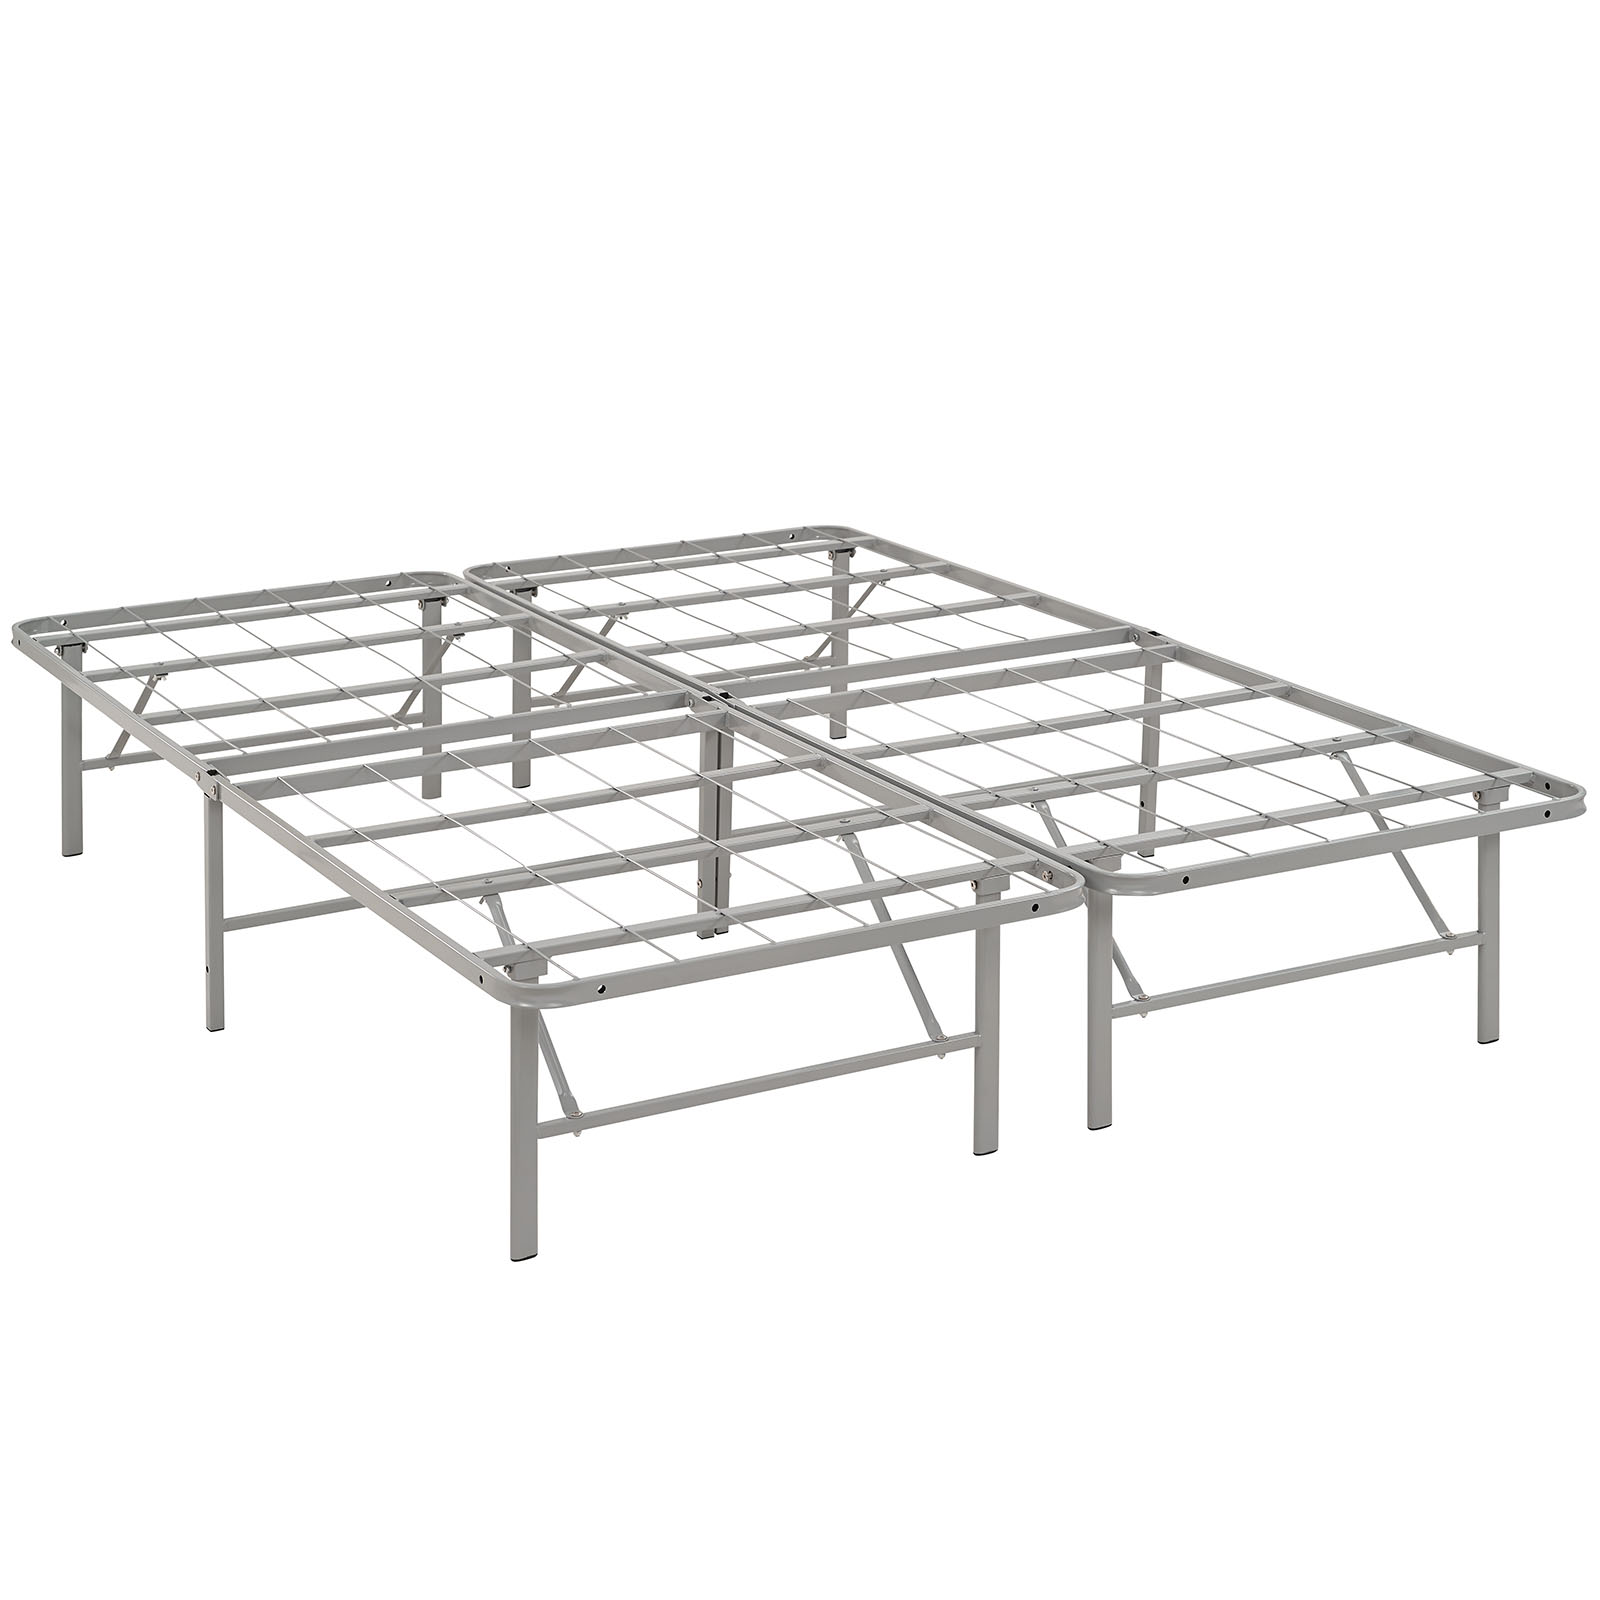 Modern Contemporary Urban Design Bedroom Full Size Platform Bed Frame, Grey Gray, Metal Steel